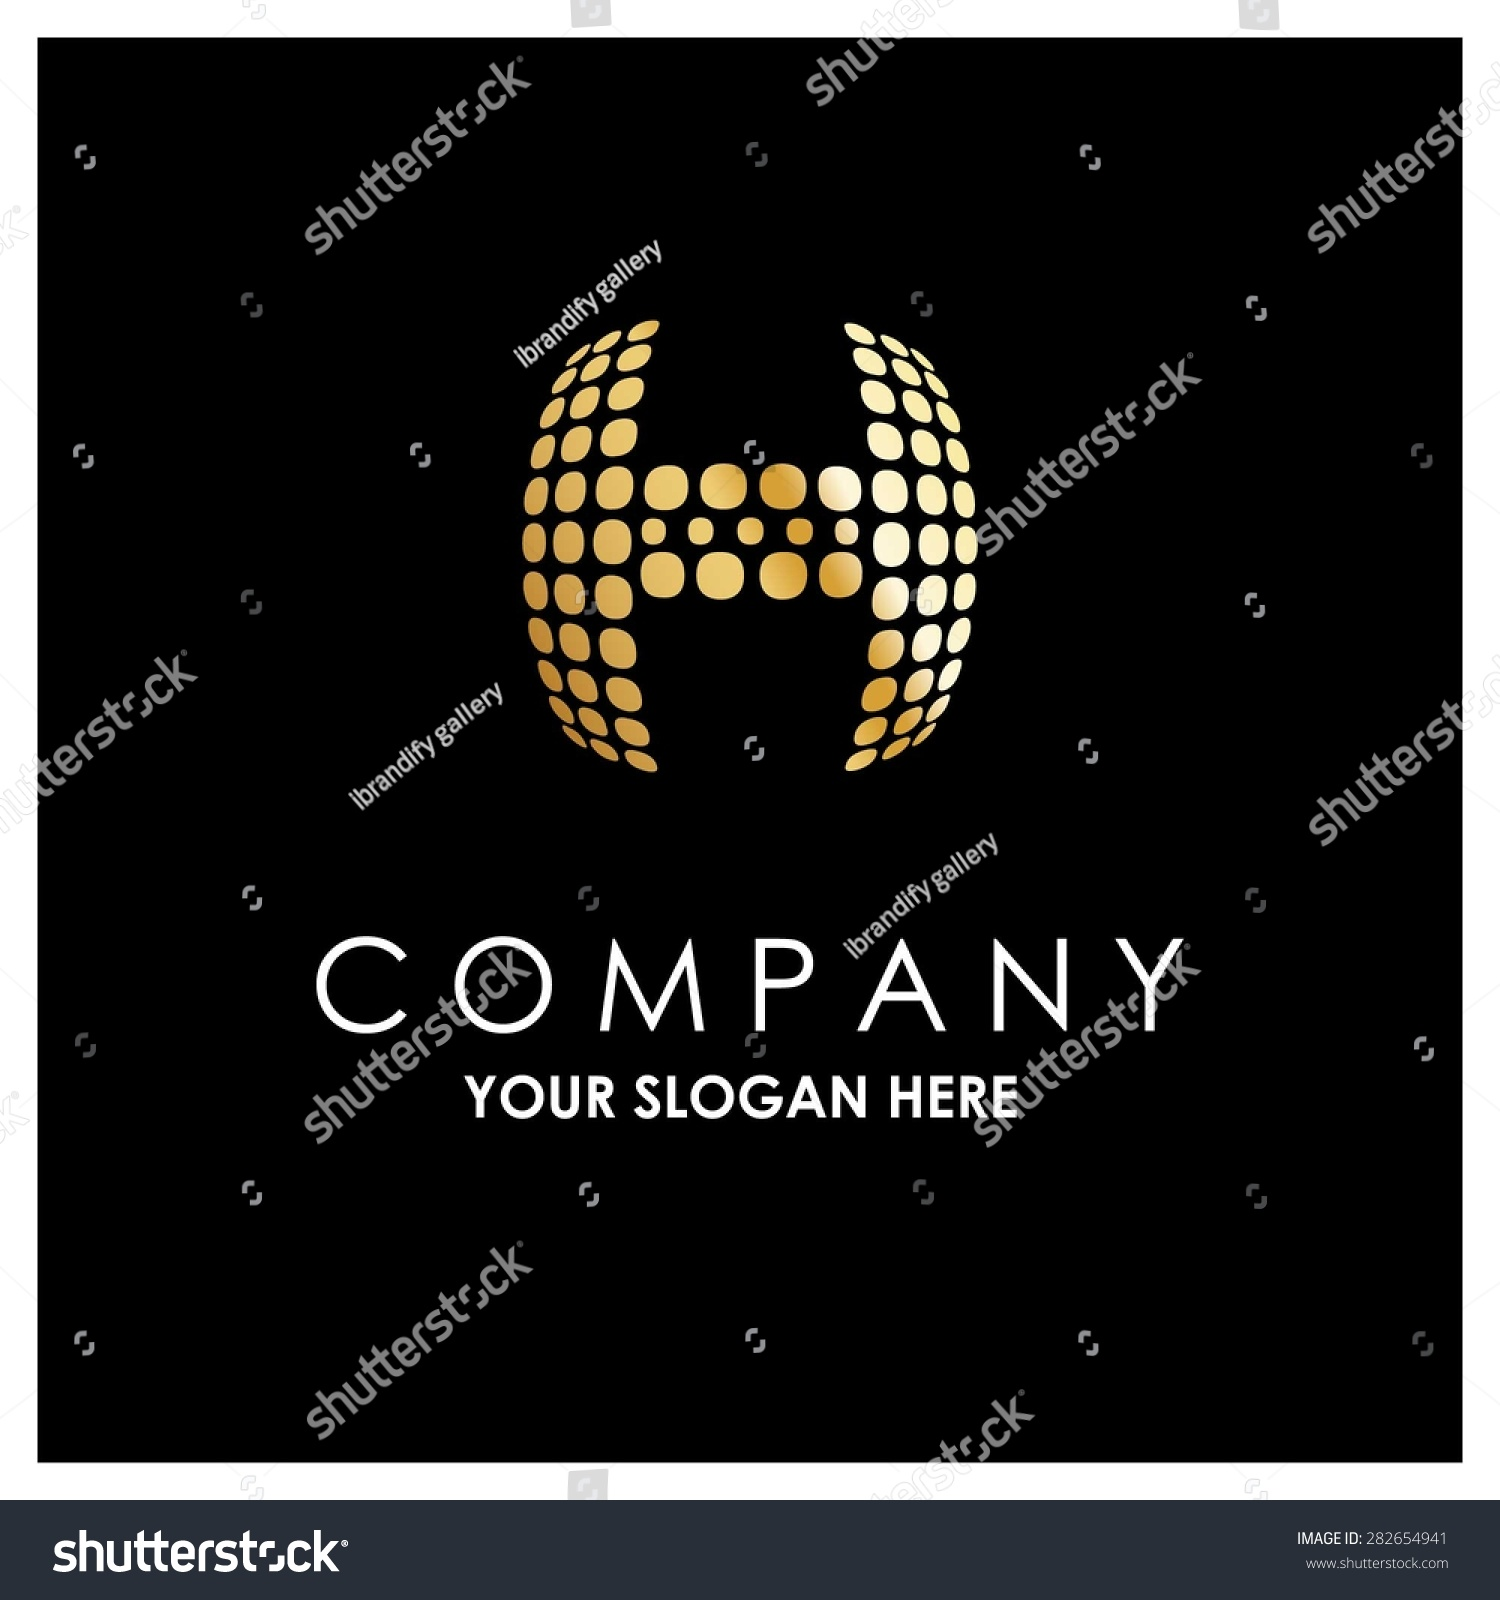 H tag background image - Letter H Logo Golden Bold Sphare Logo On White Background Place For Company Name